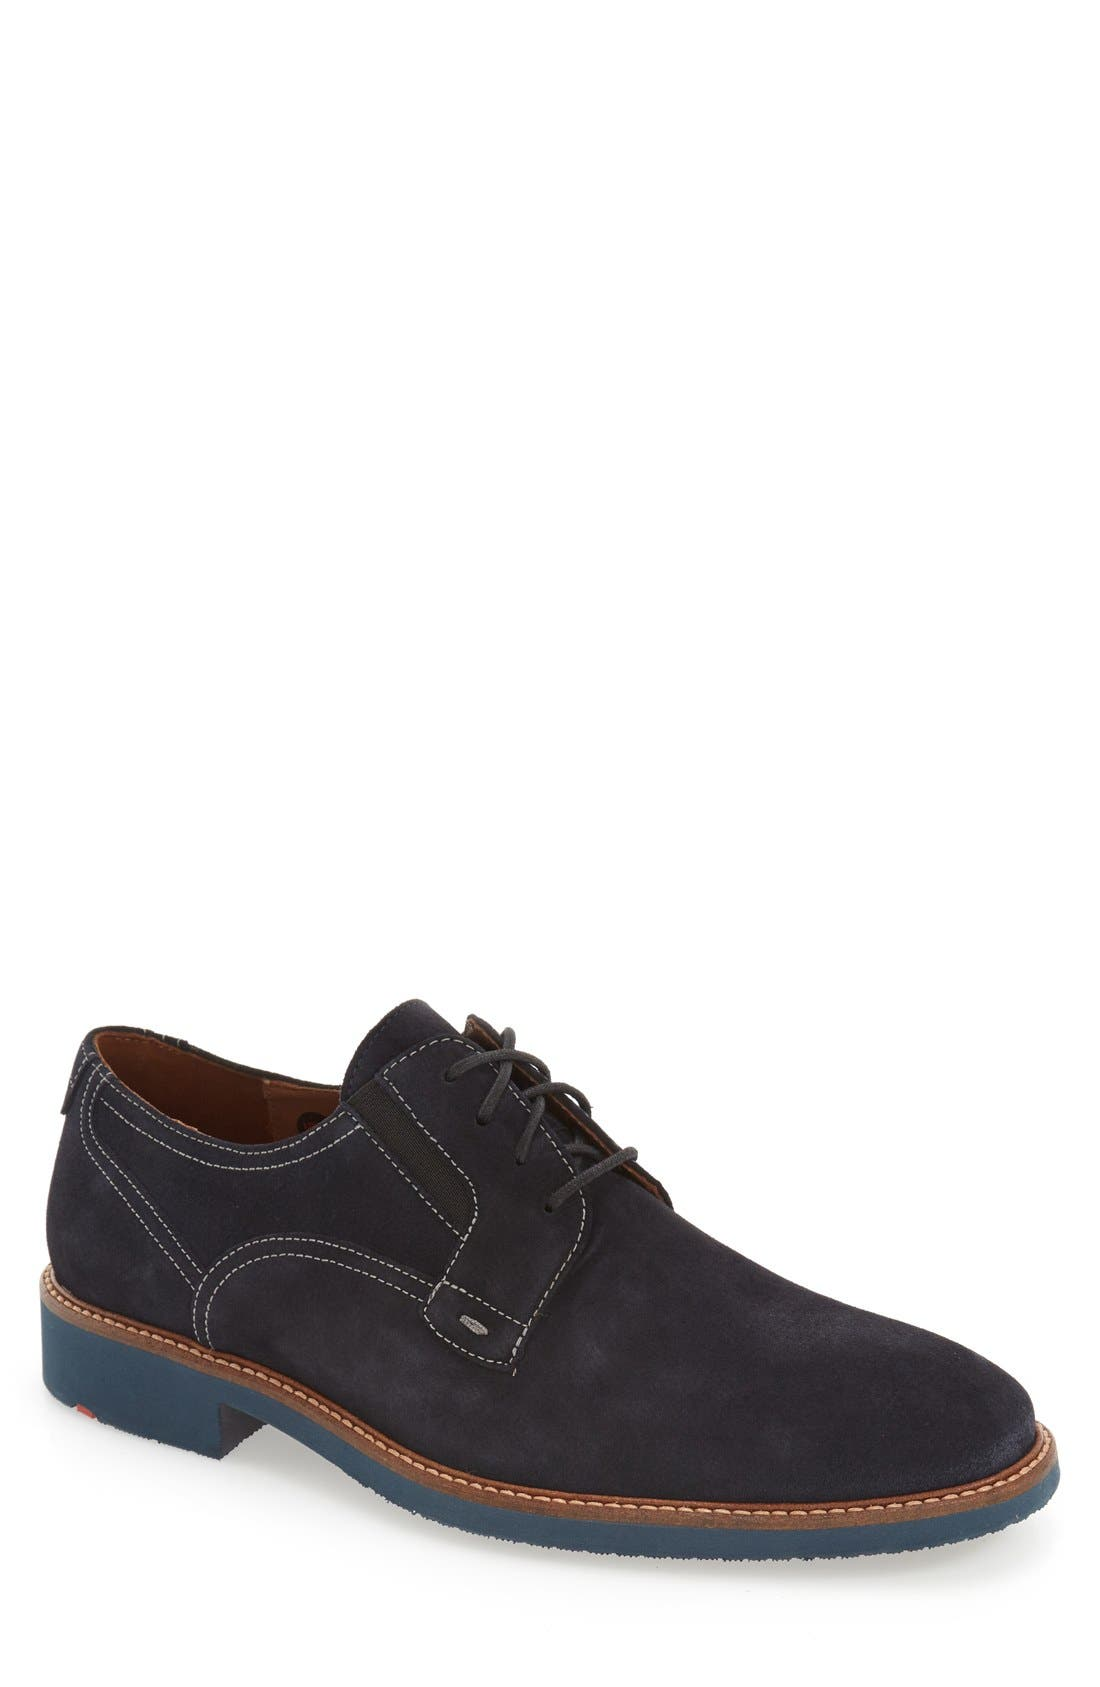 Main Image - LLOYD 'Kidron' Oxford (Men)